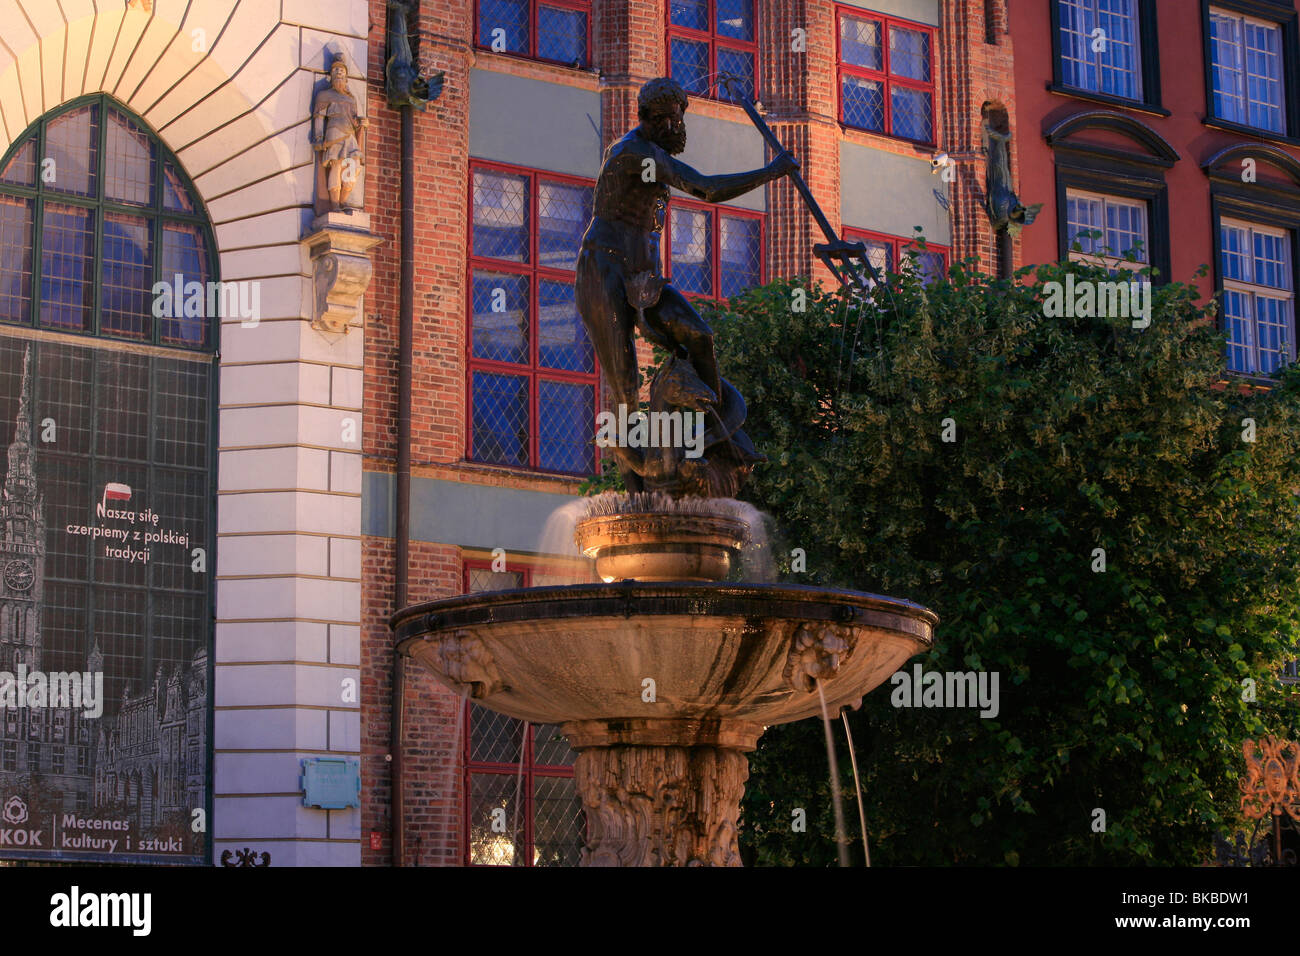 Neptune's Fountain at Long Market in Gdansk, Poland Stock Photo